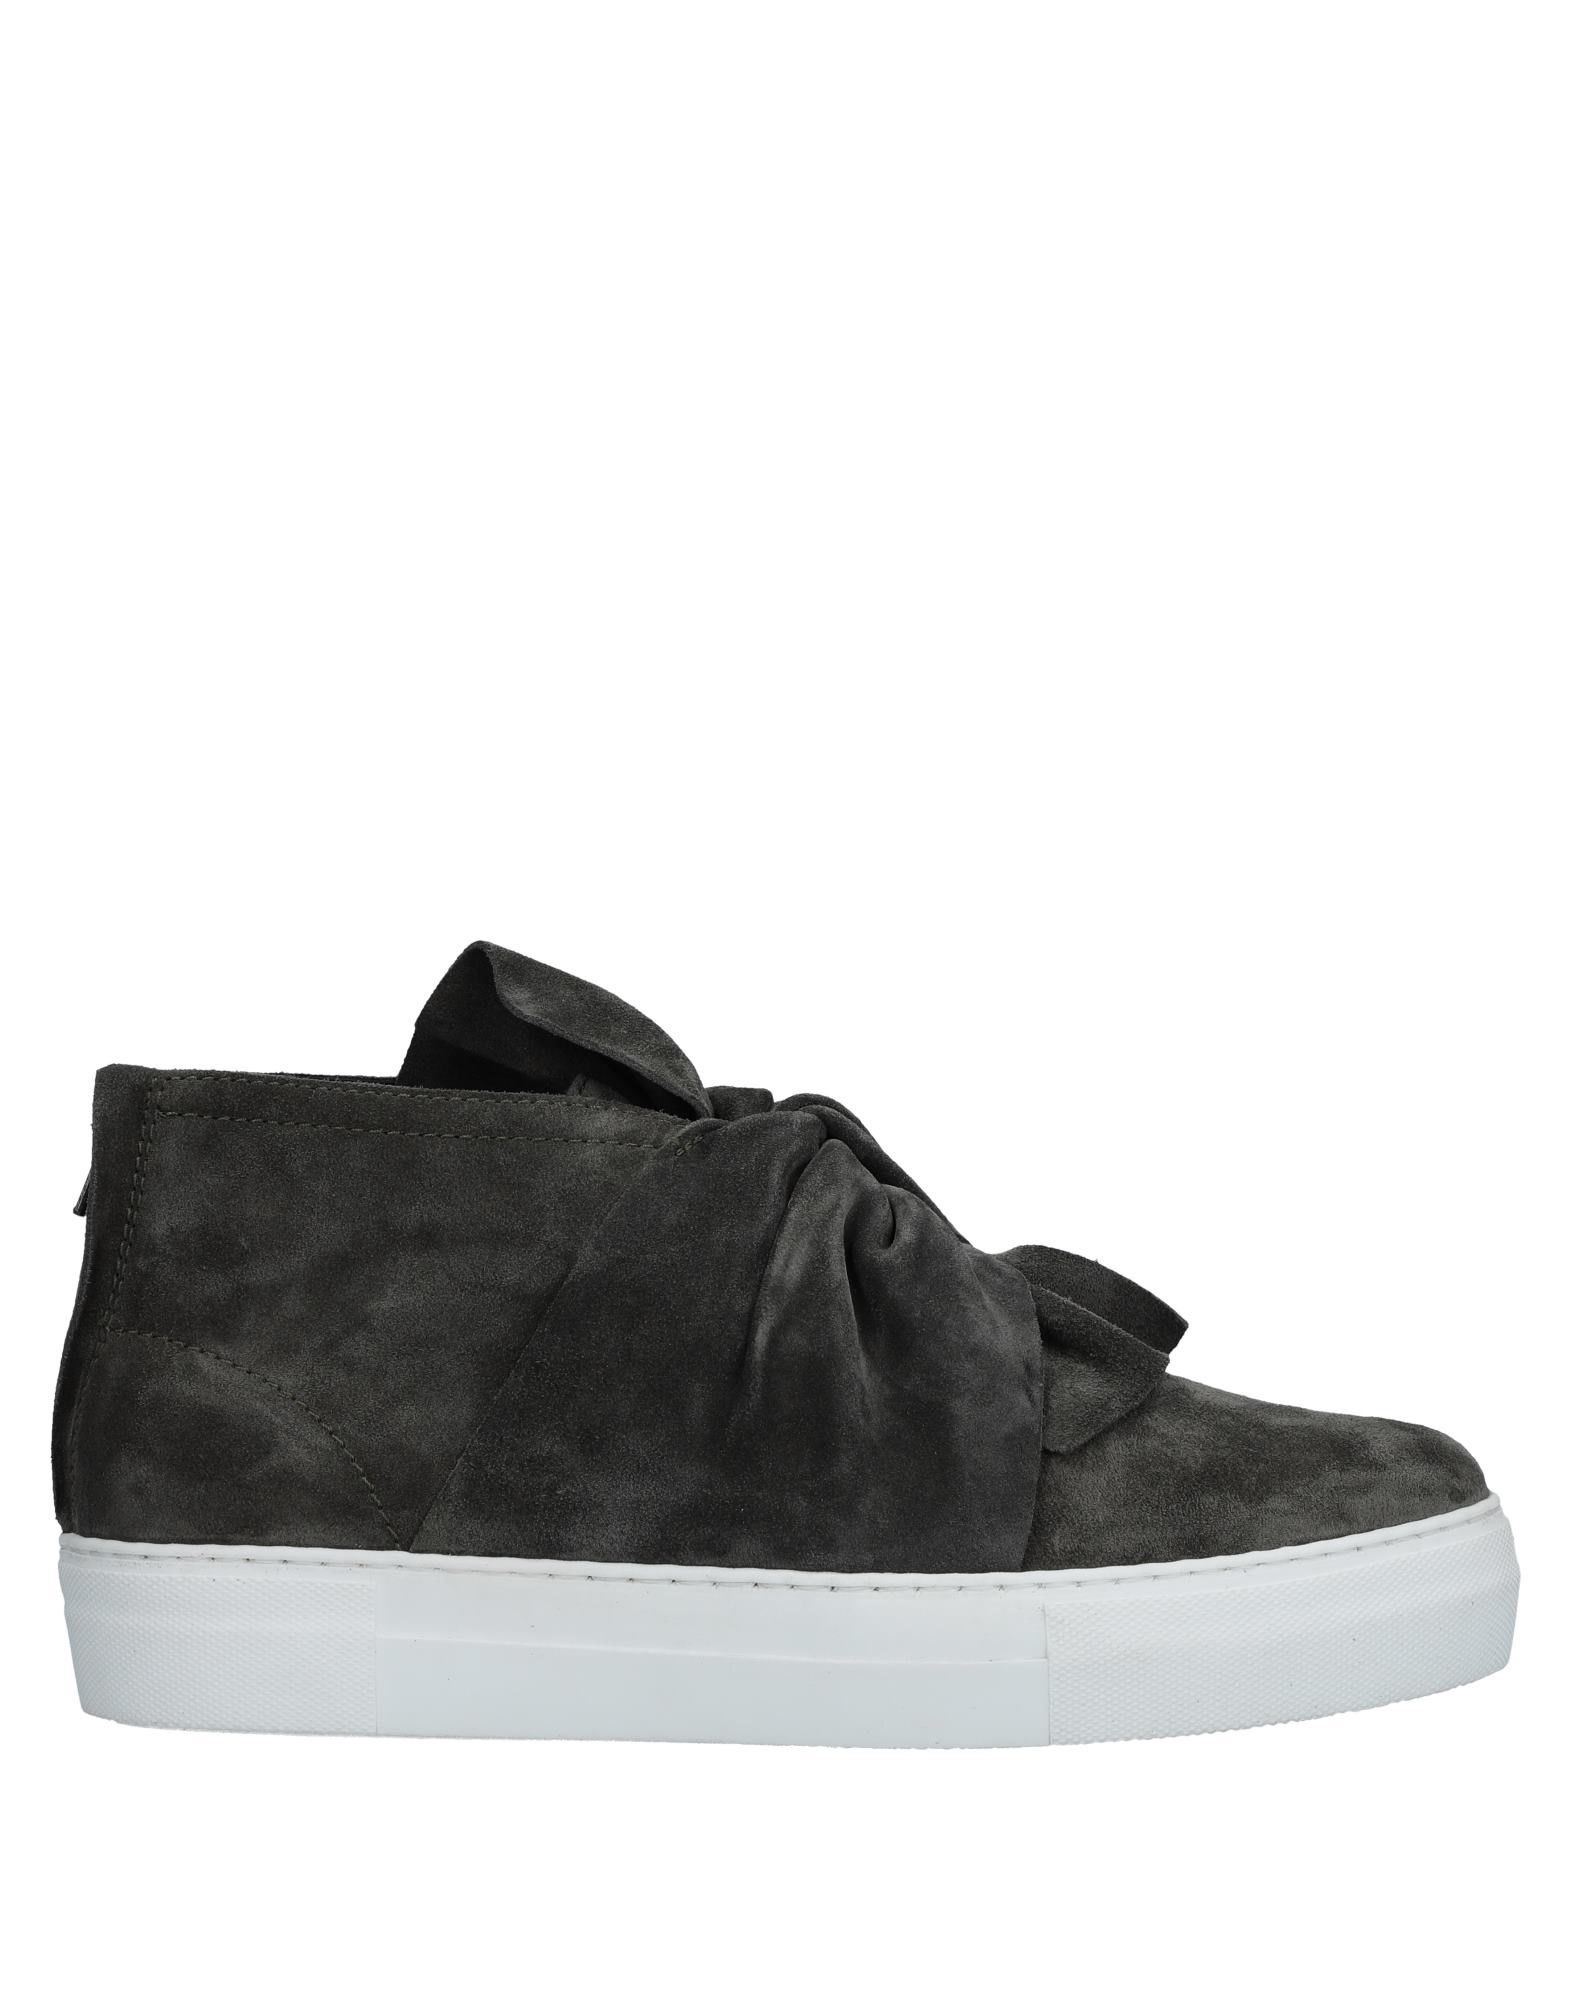 Sneakers Ports 1961 Uomo - 11527868RS